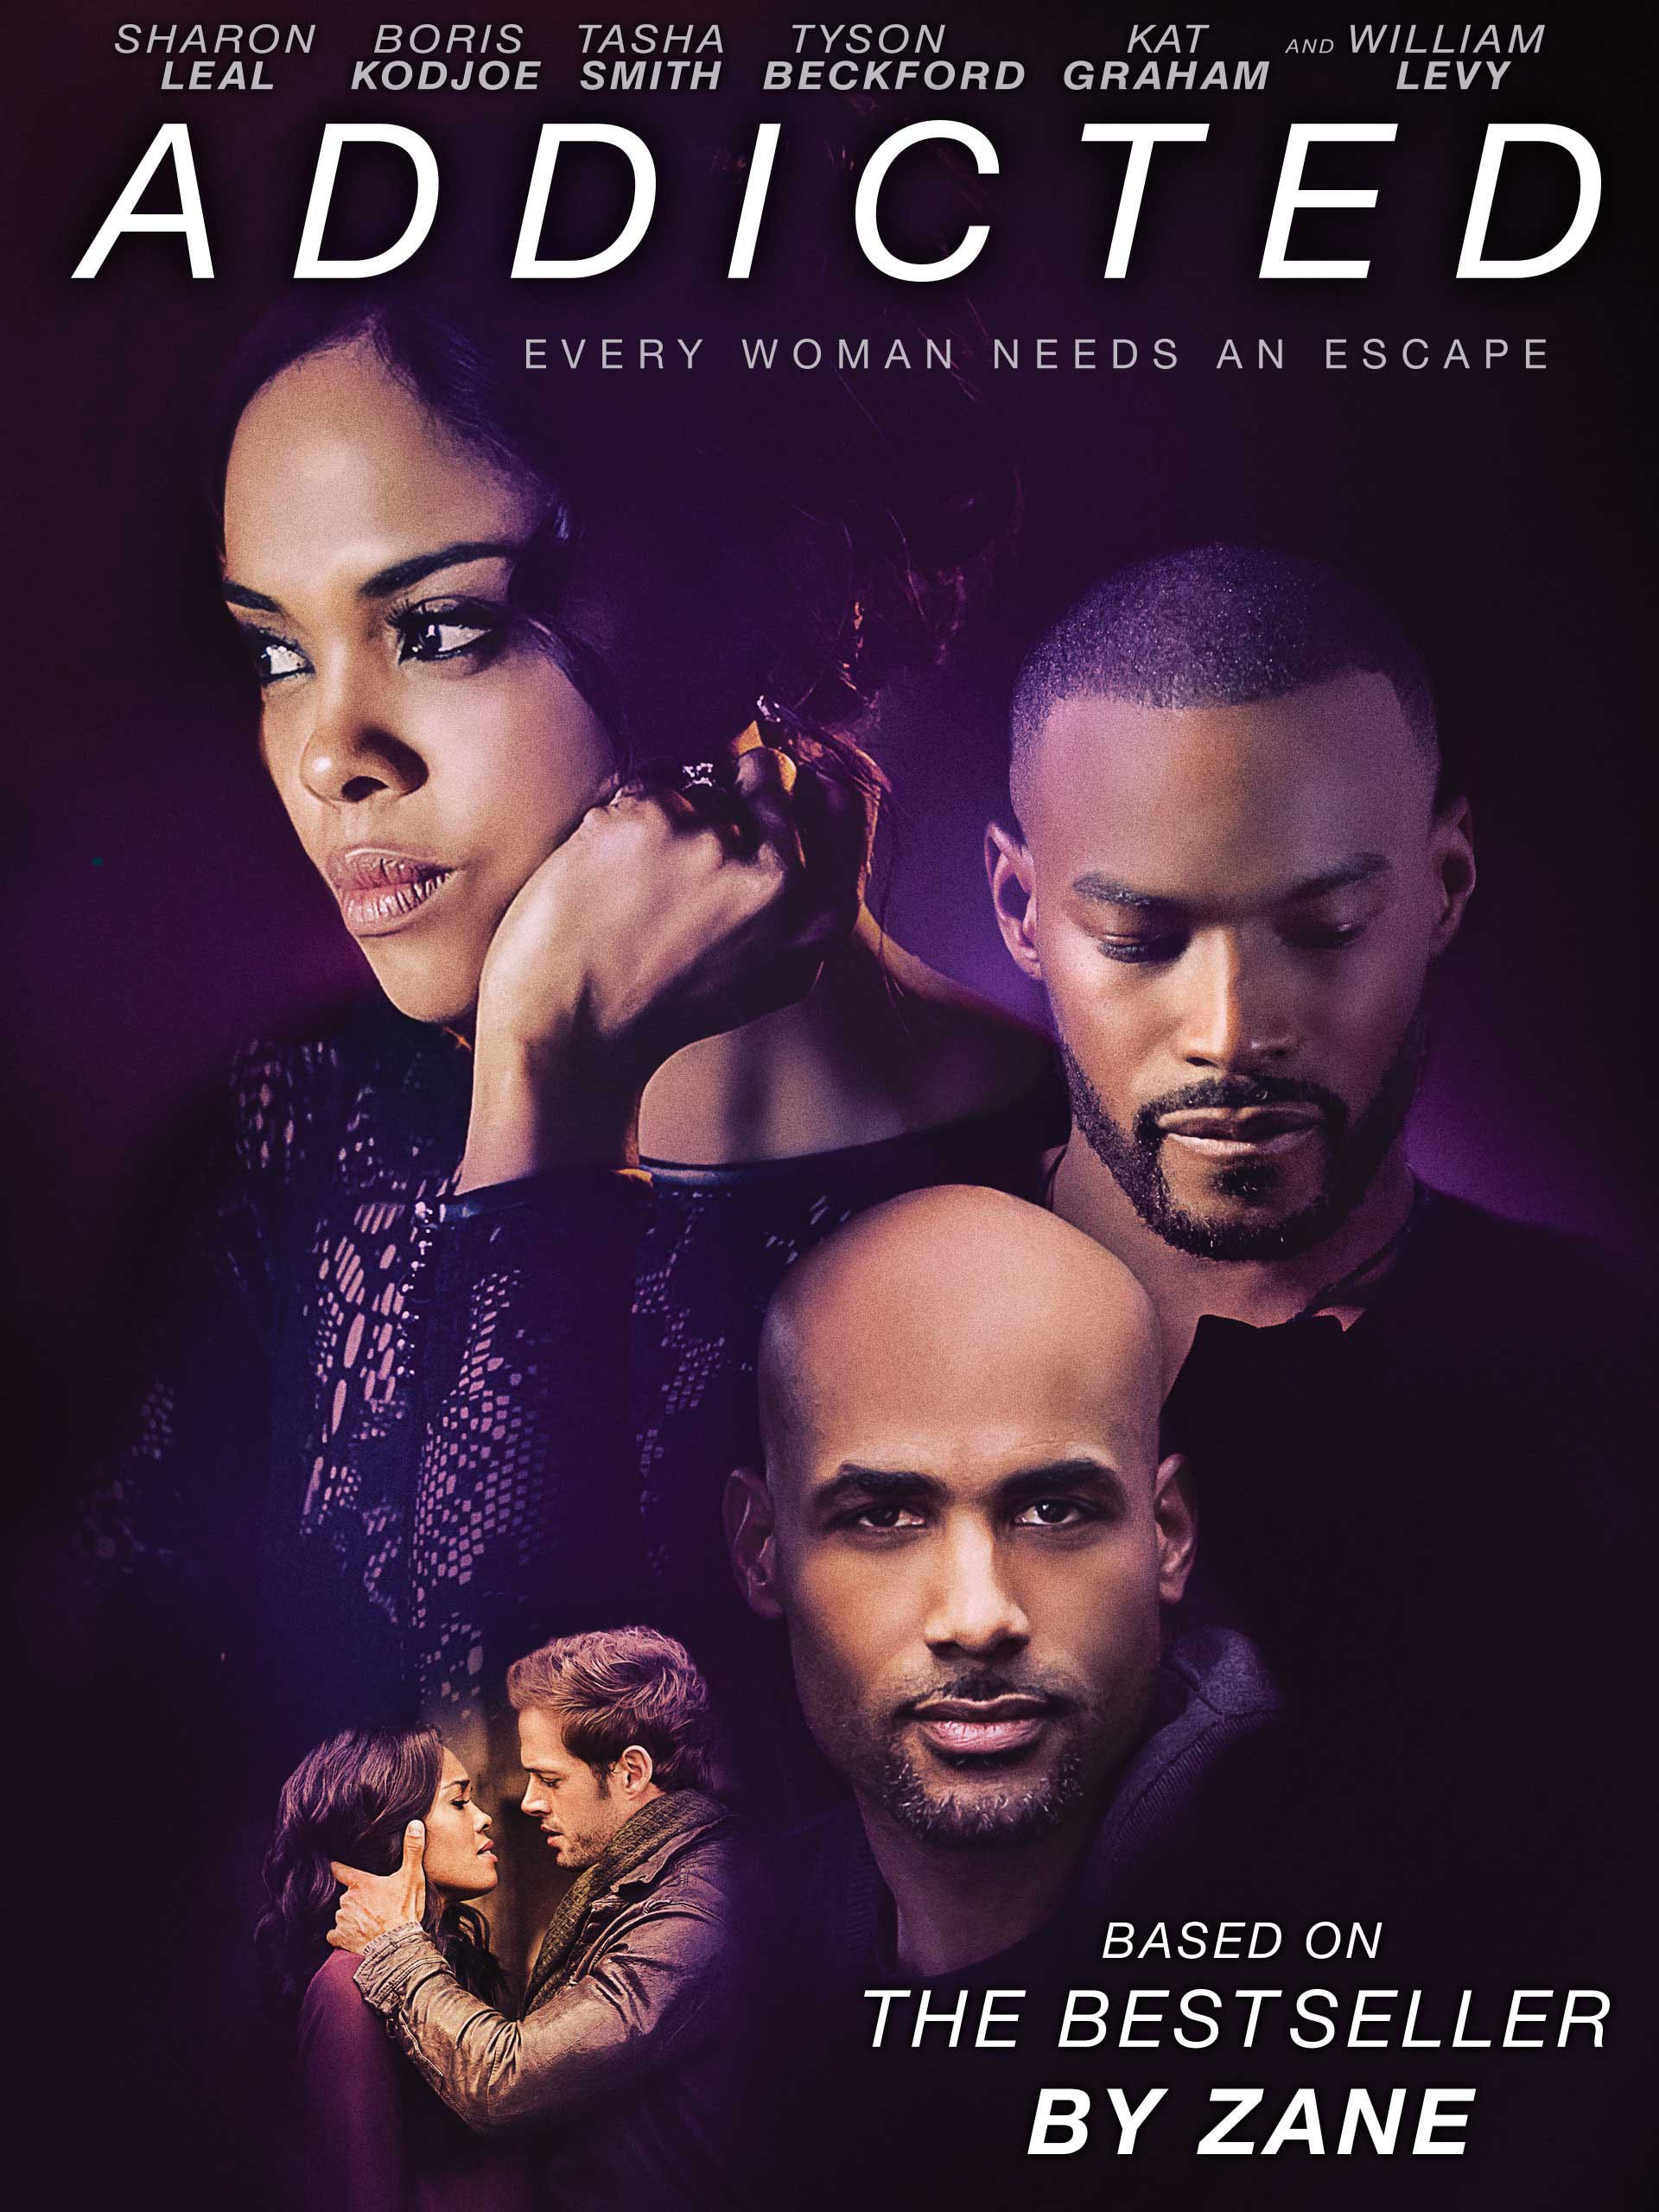 addicted 2014 full movie free download hd 720p